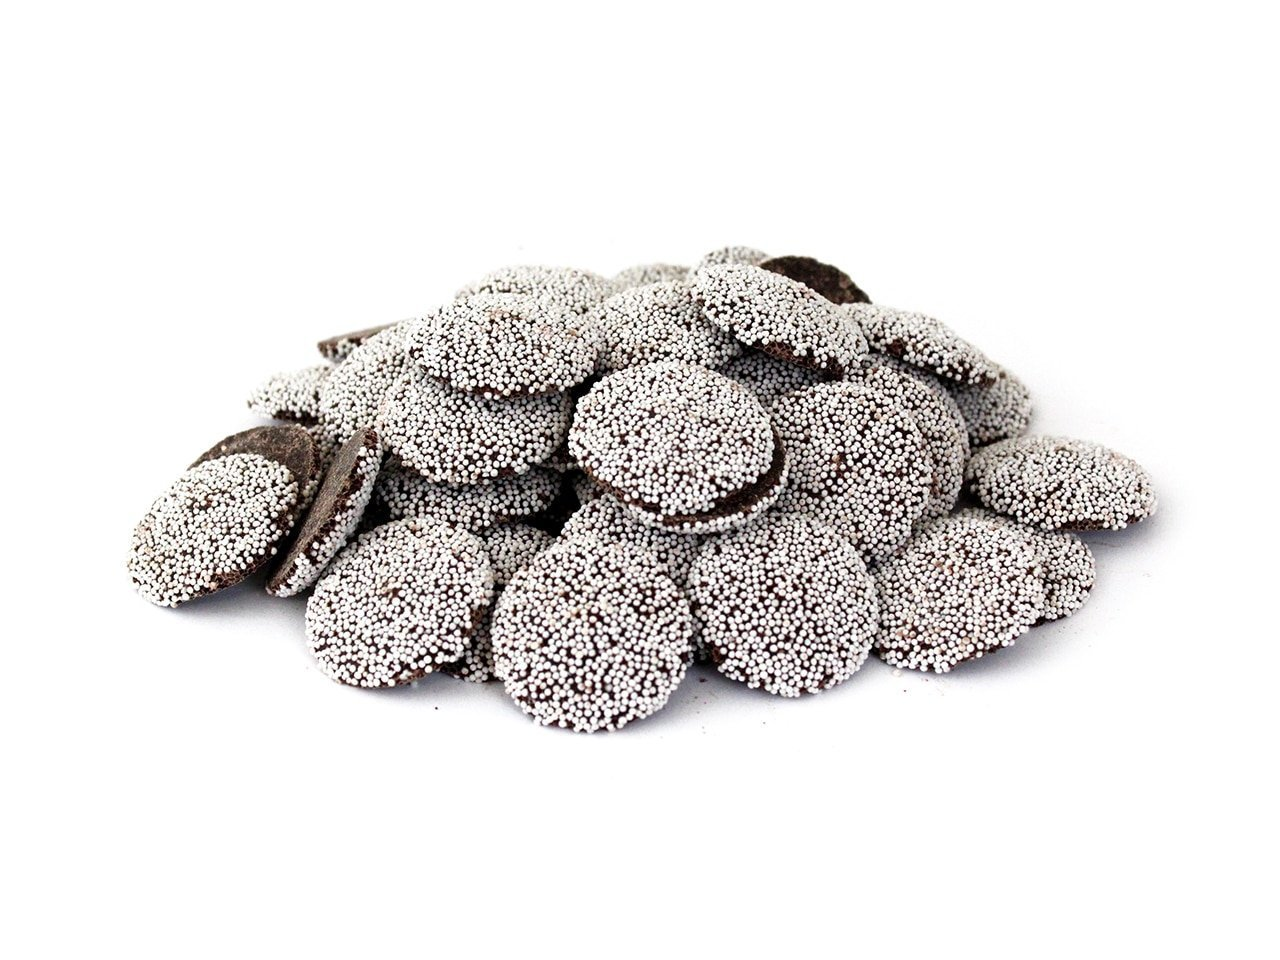 Bagged Snow Caps (Dark Chocolate Nonpareils)